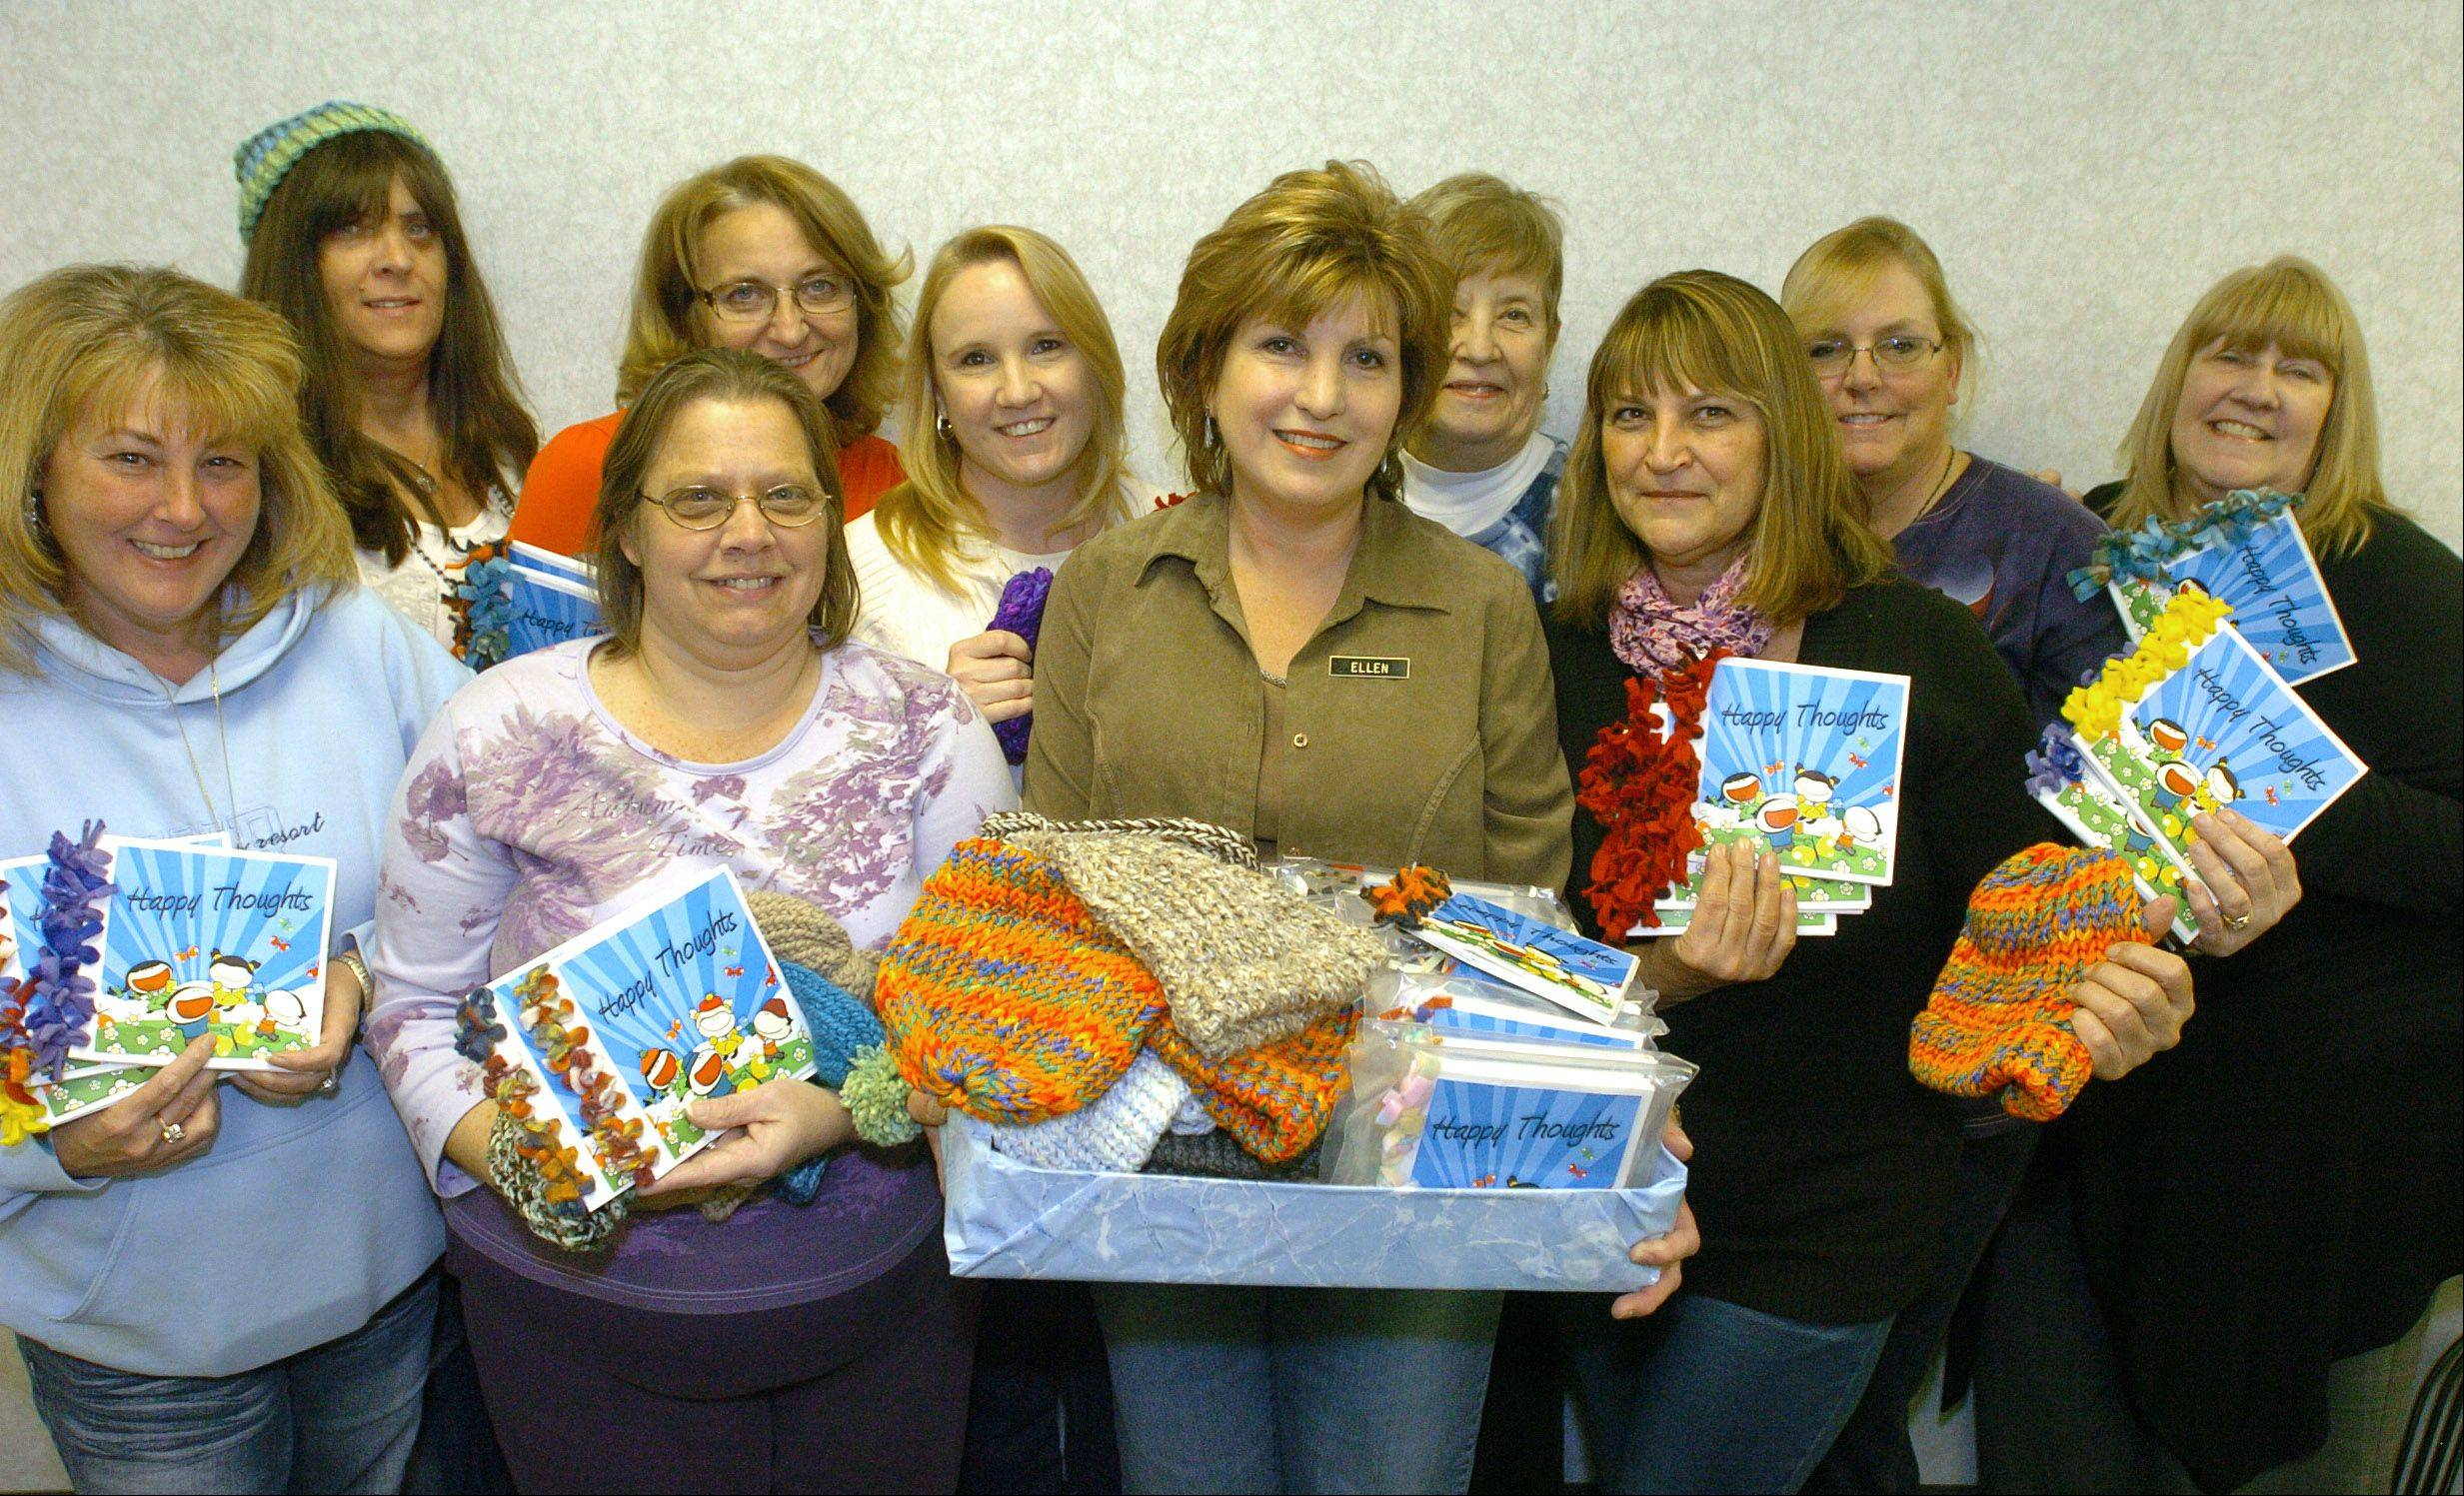 Happy Caps founder Ellen Hart, center, began recruiting this team of volunteers and others for her new organization earlier this year. The group knits caps for cancer patients and makes journals for them and behavioral health patients, too.